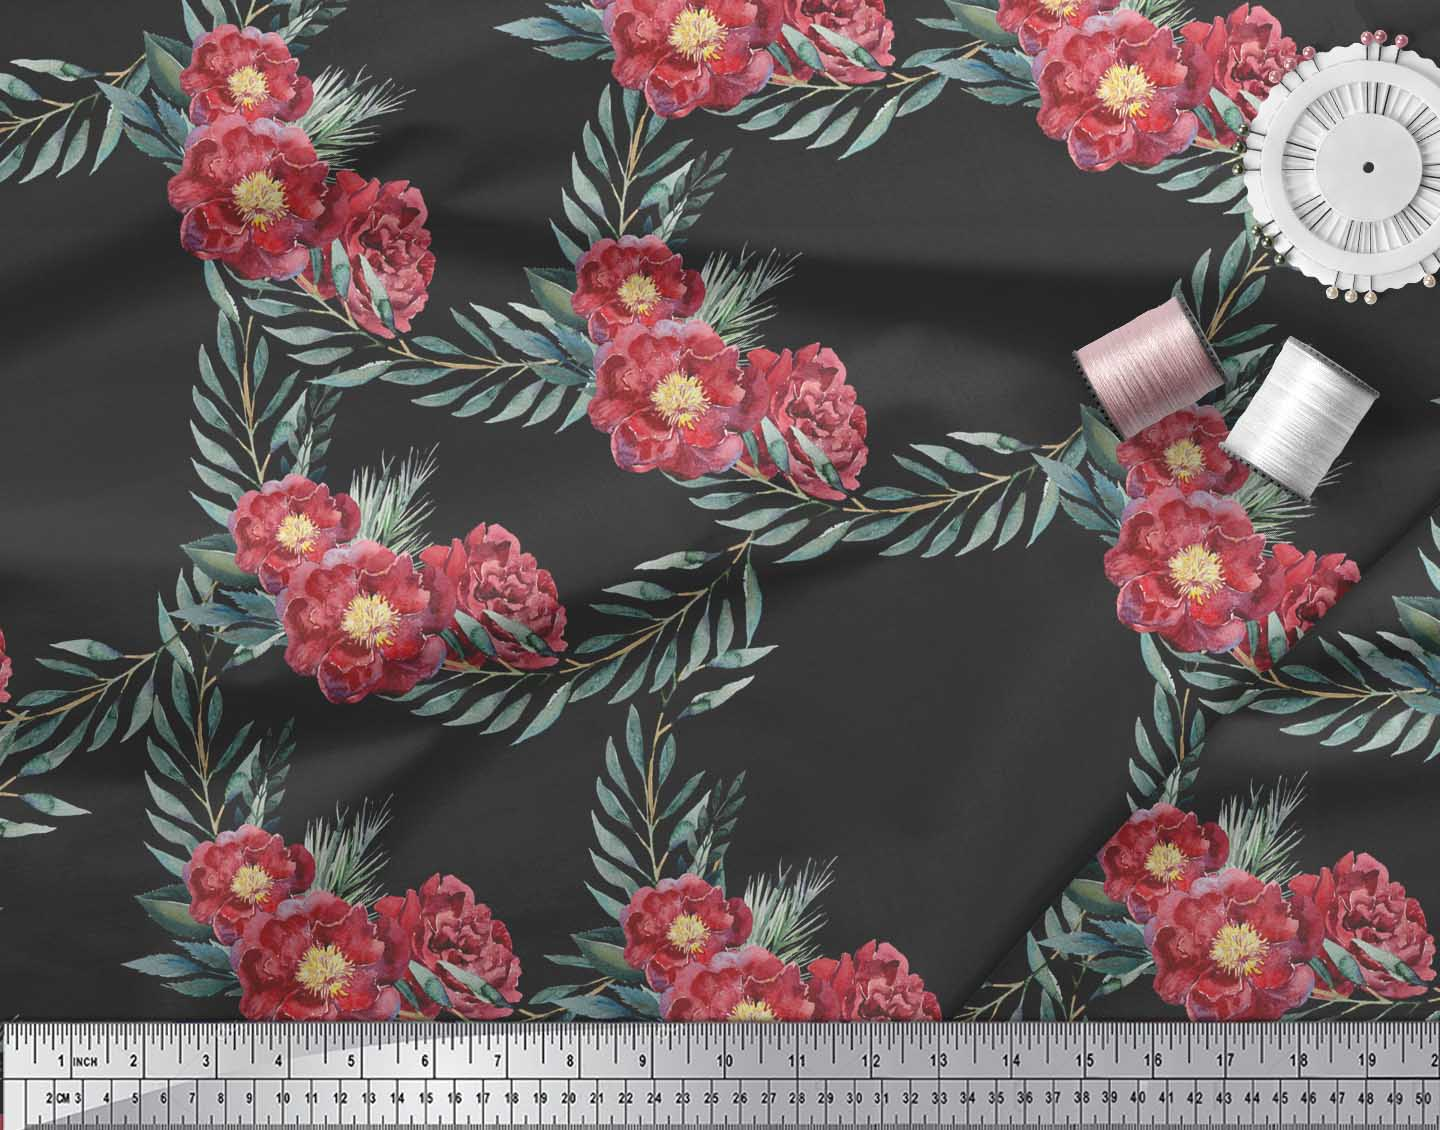 Soimoi-Black-Cotton-Poplin-Fabric-Leaves-amp-Peony-Floral-Fabric-Prints-JE7 thumbnail 3